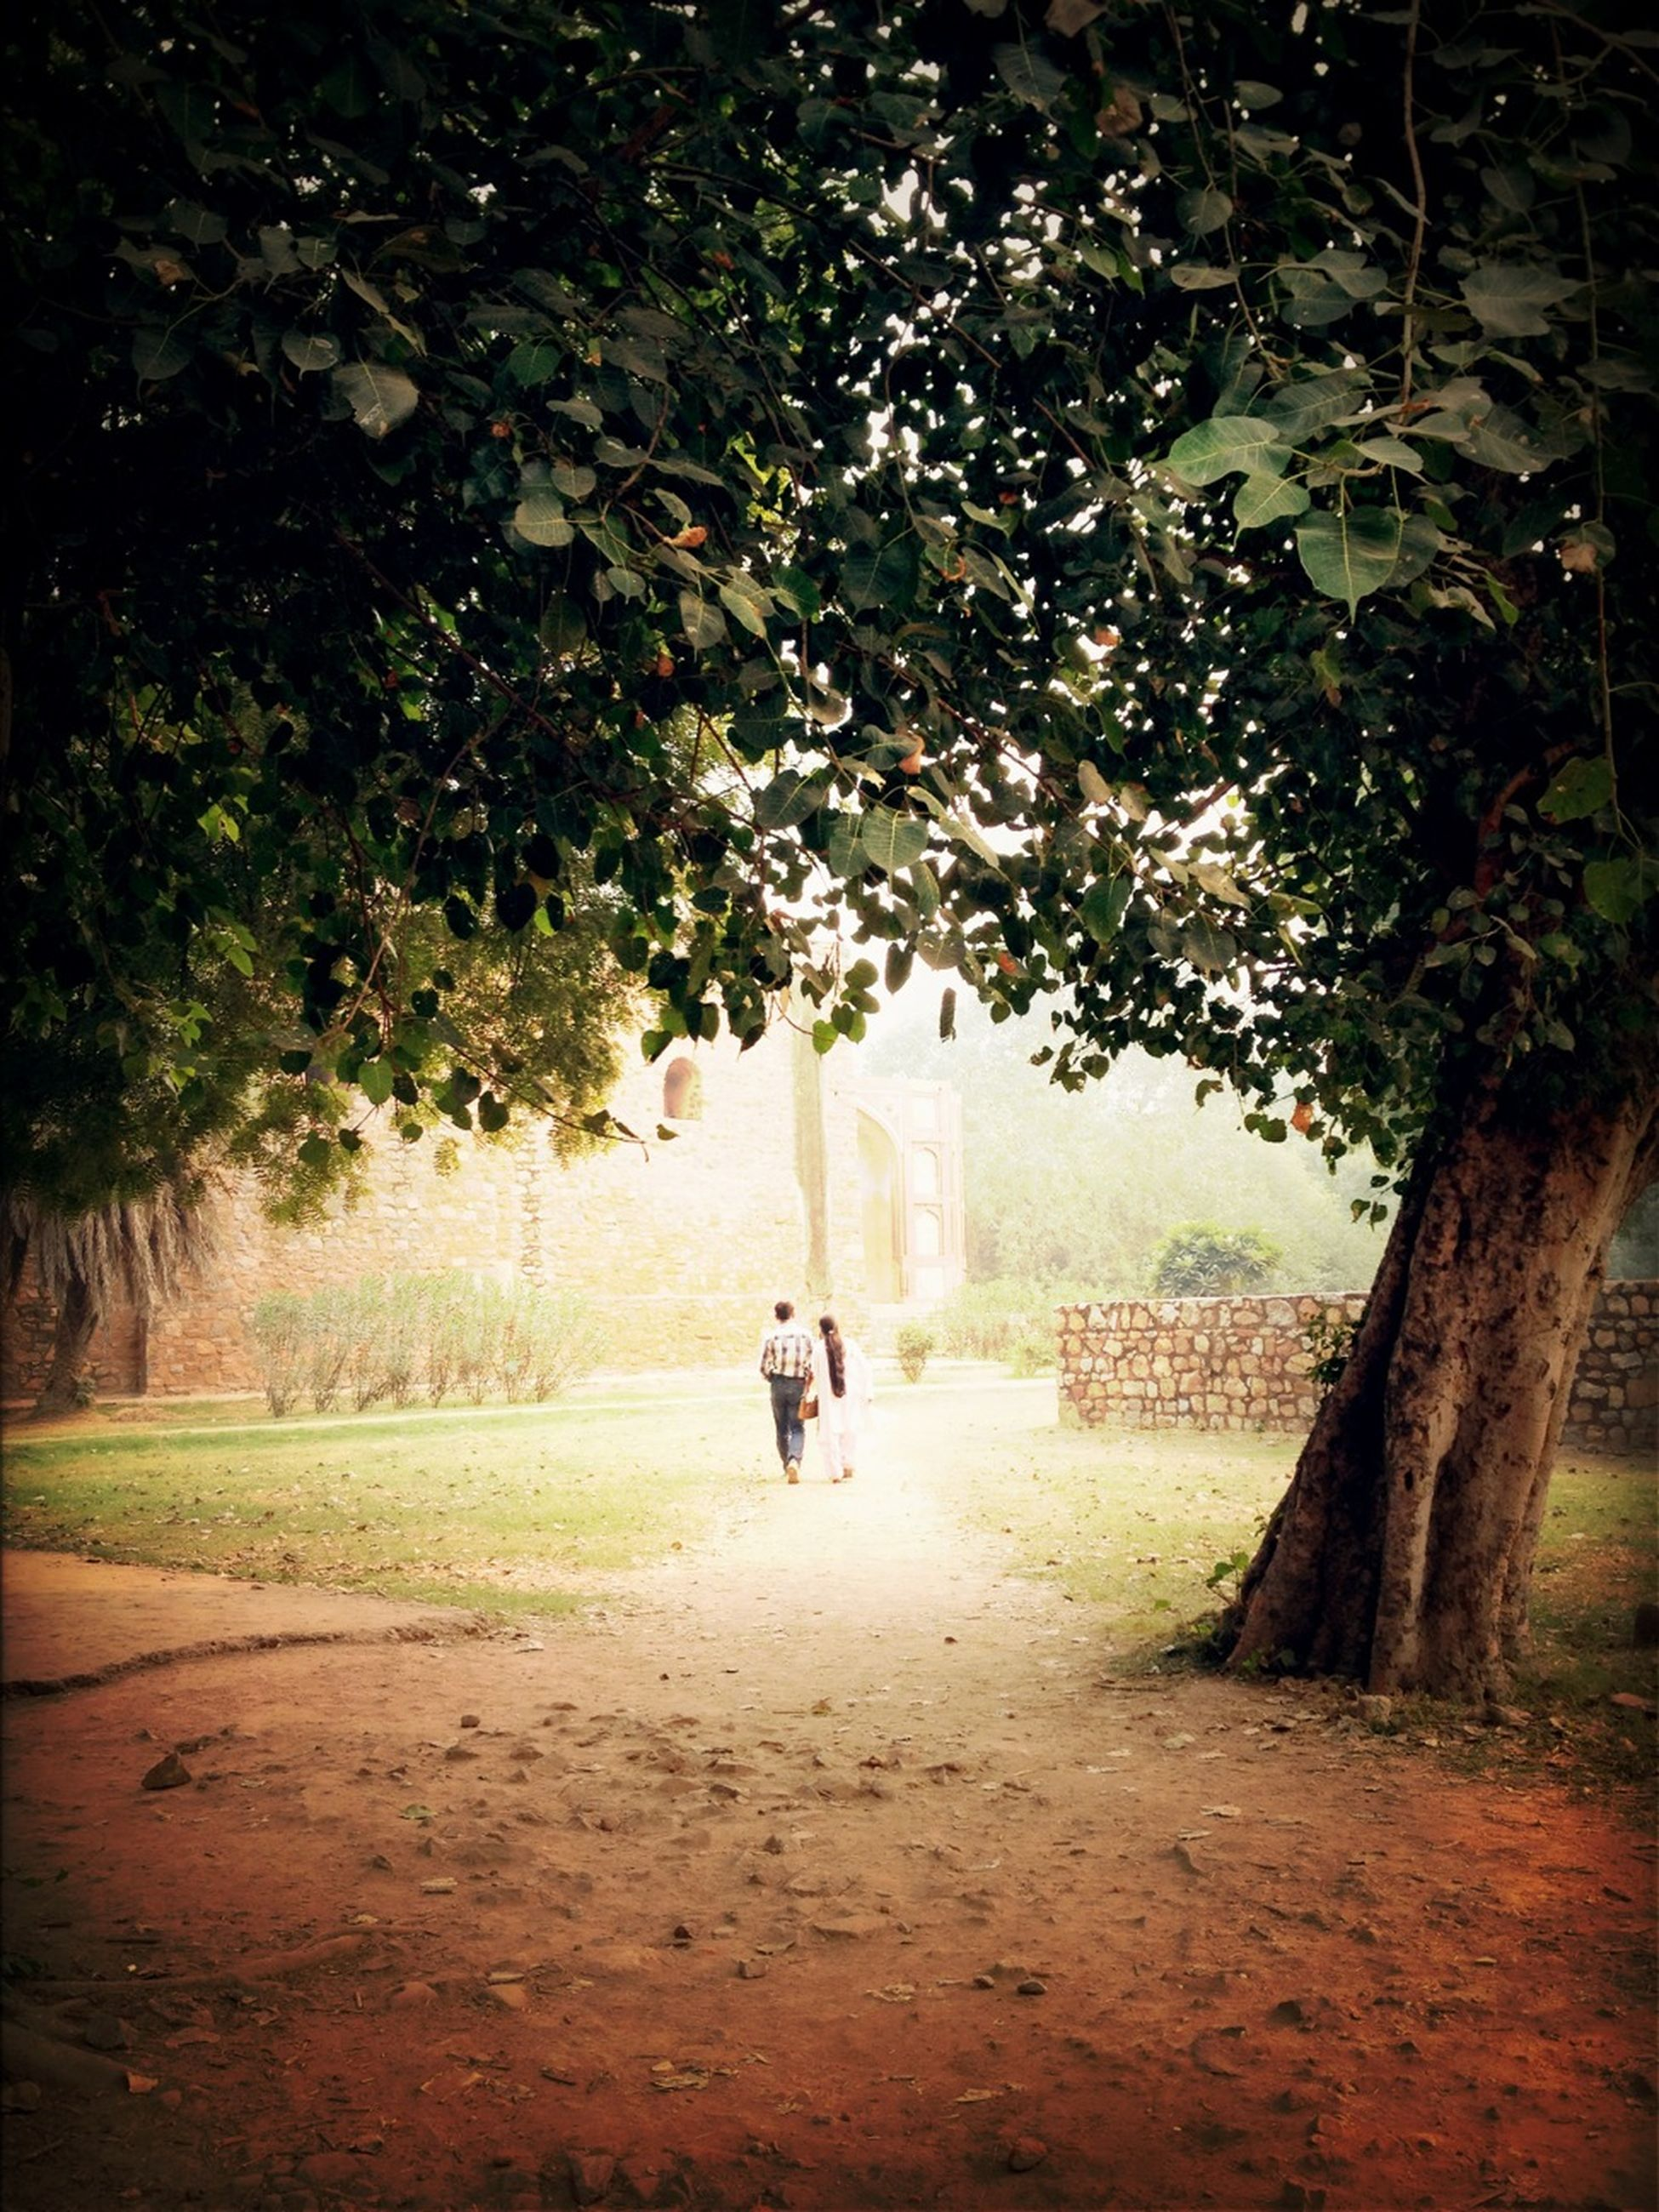 tree, walking, growth, lifestyles, nature, full length, park - man made space, the way forward, men, rear view, footpath, leisure activity, outdoors, tranquility, street, day, motion, person